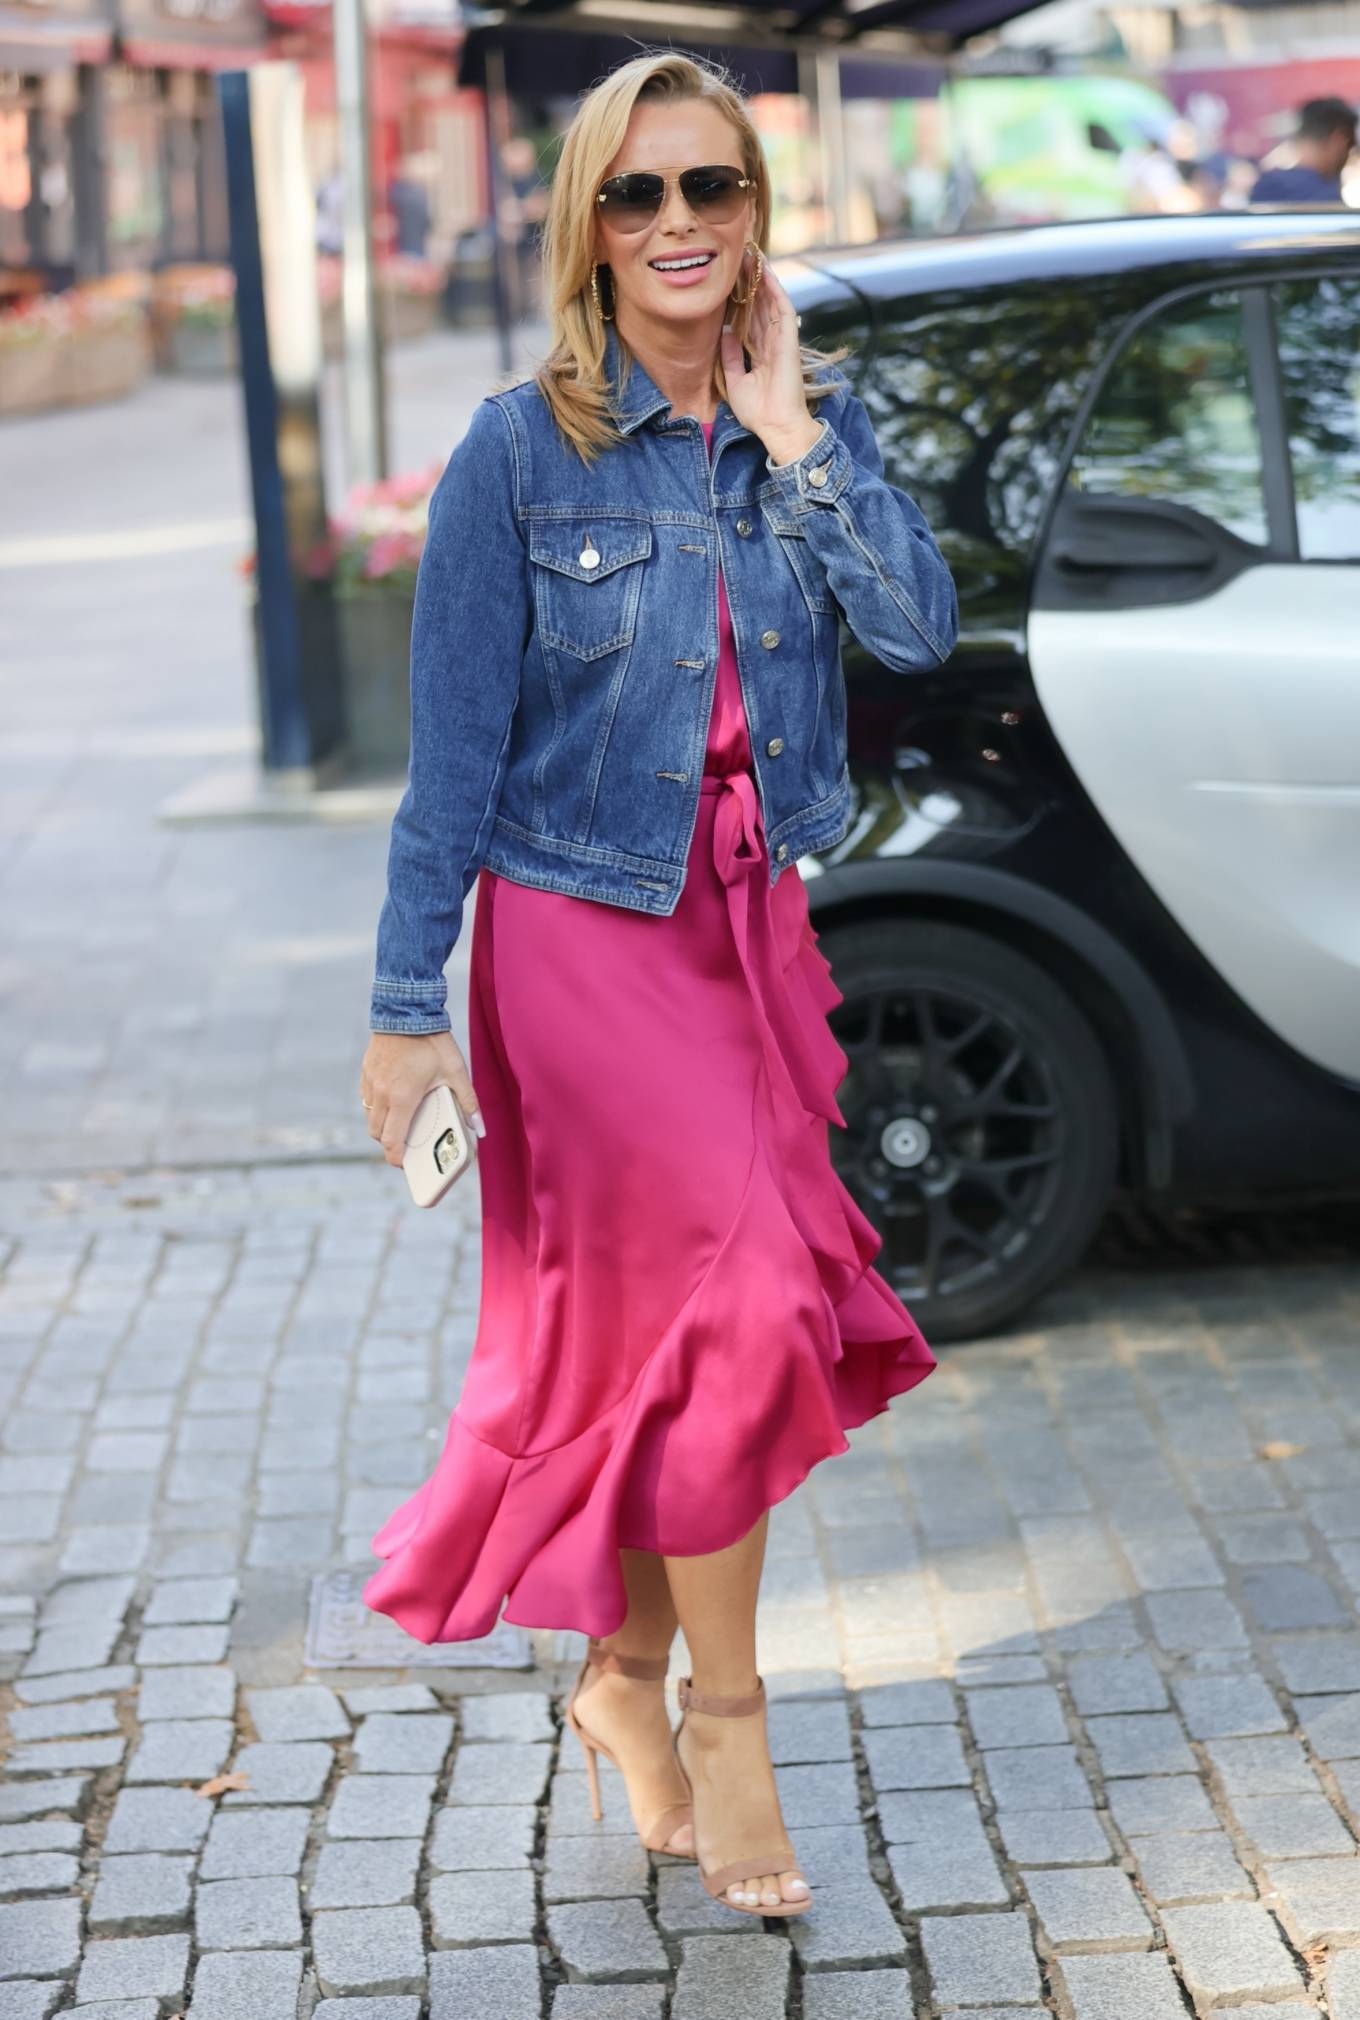 Amanda Holden - Out in a glowing pink dress and denim jacket at Heart radio in London